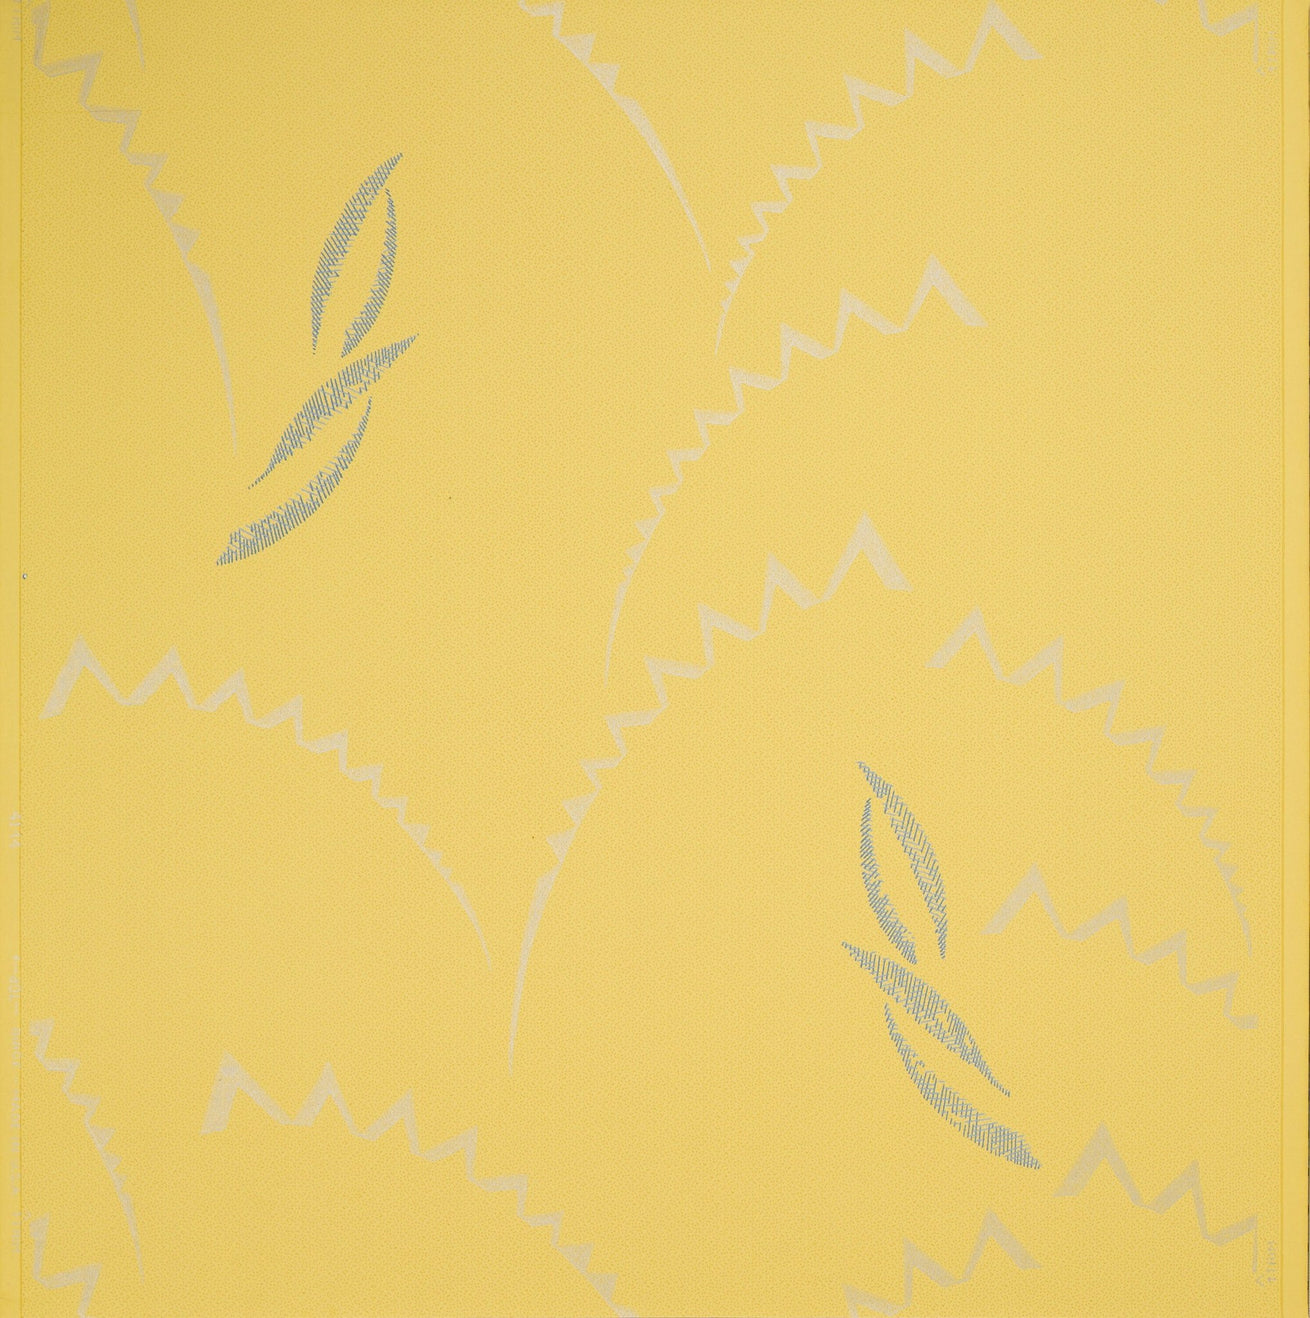 Silver Serrated Crescents and Hatched Leaves - Antique Wallpaper Remnant